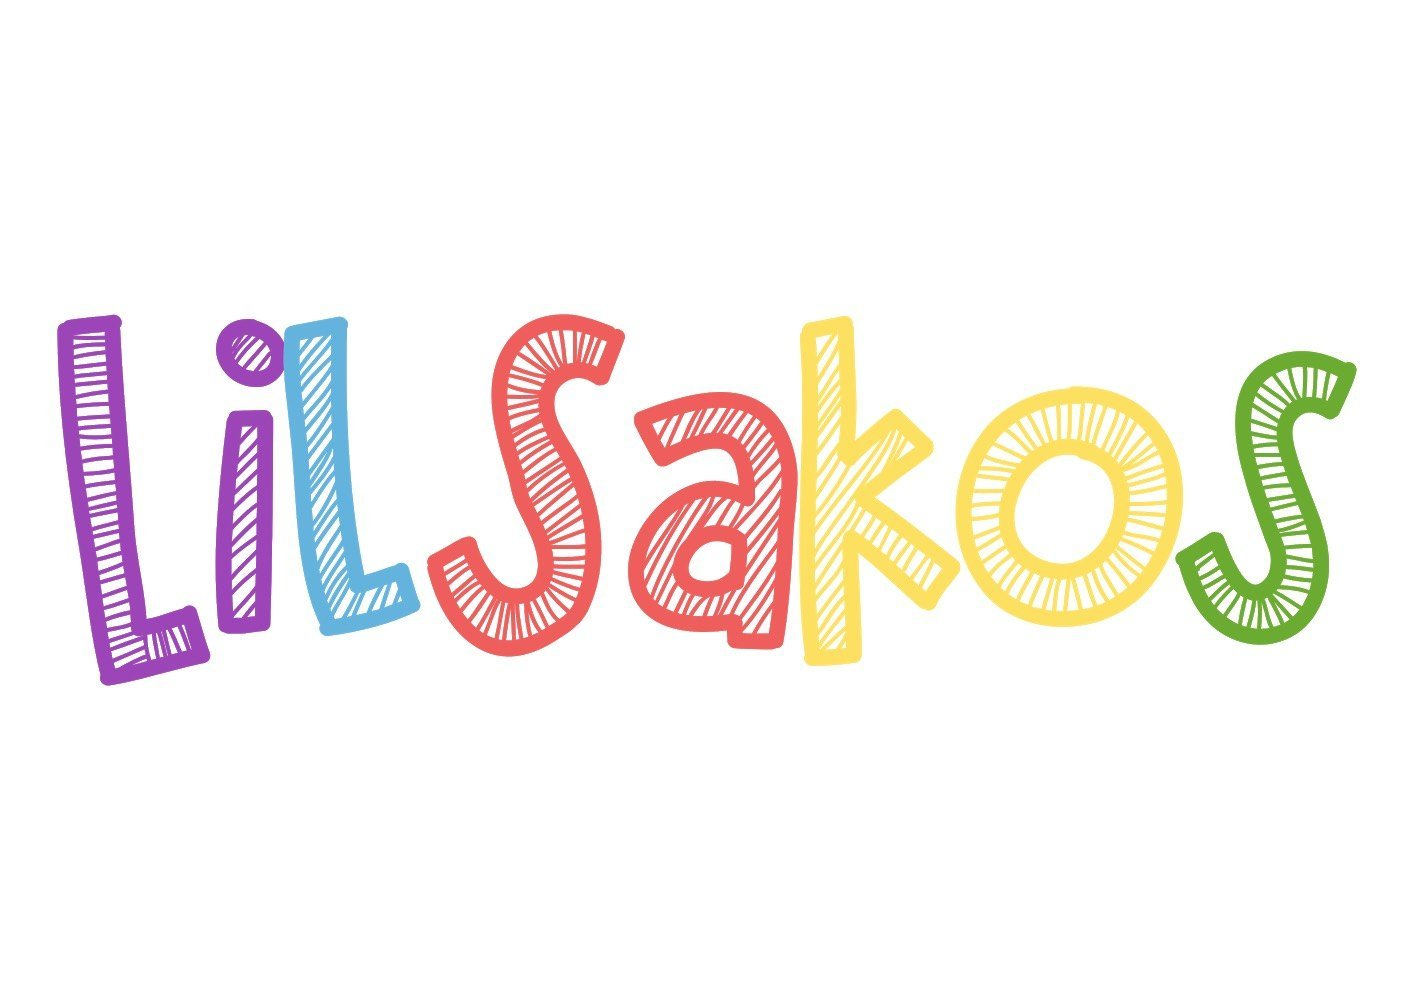 Interview with Saakshi from Lilsakos